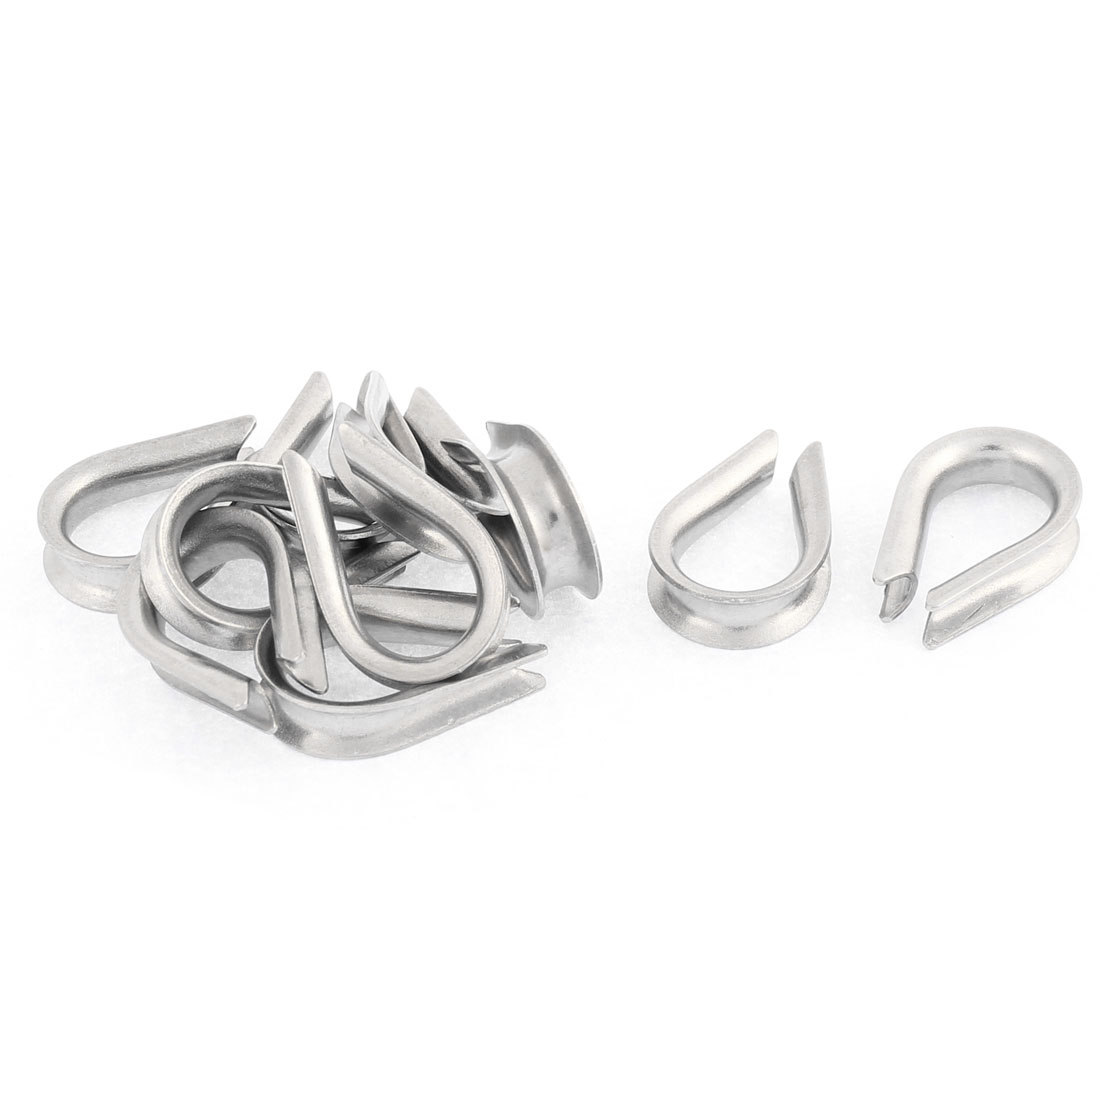 Stainless Steel 4mm Standard Wire Rope Cable Thimbles Rigging Hardware 10pcs